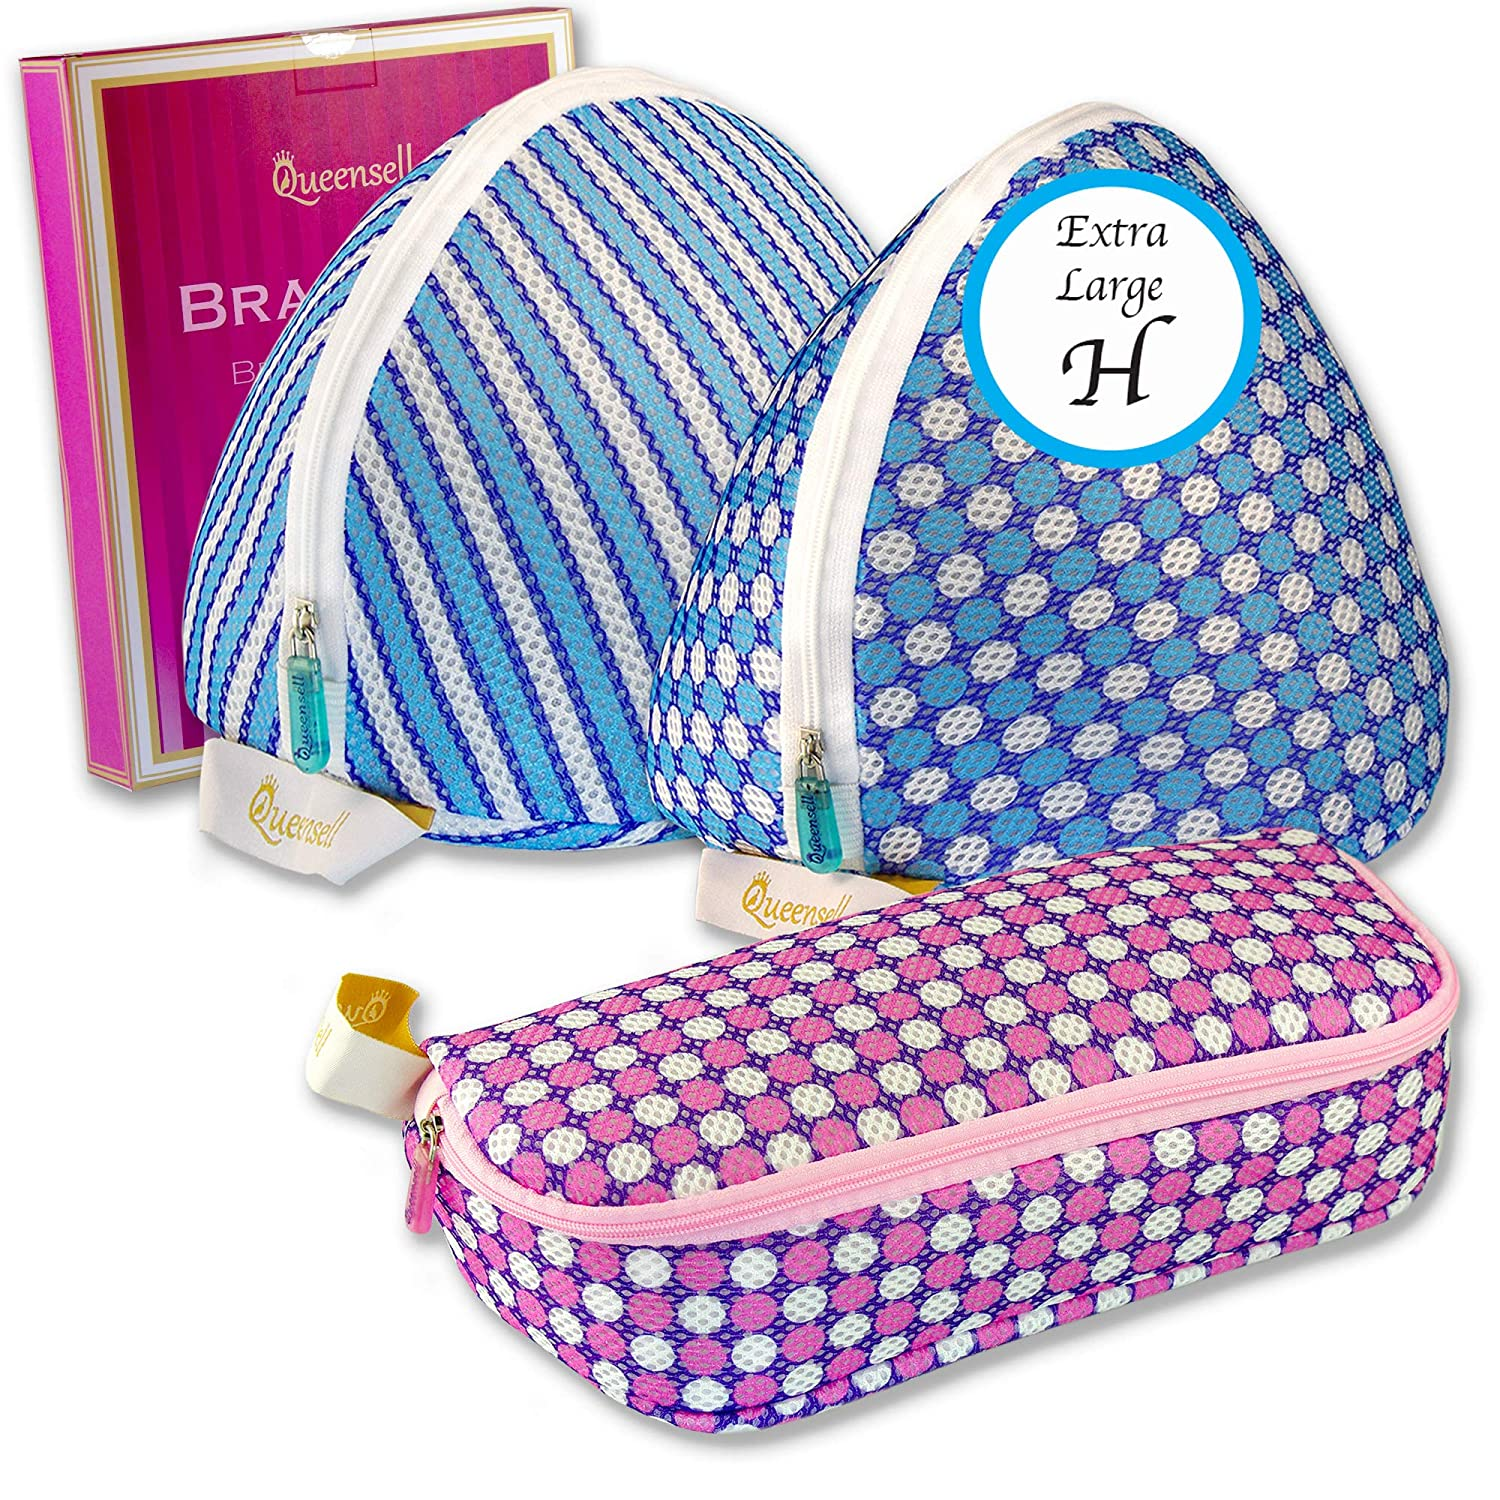 Queensell Extra Large Bra Wash Bag Set of 3 Mesh Laundry Bags for Bras & Panties